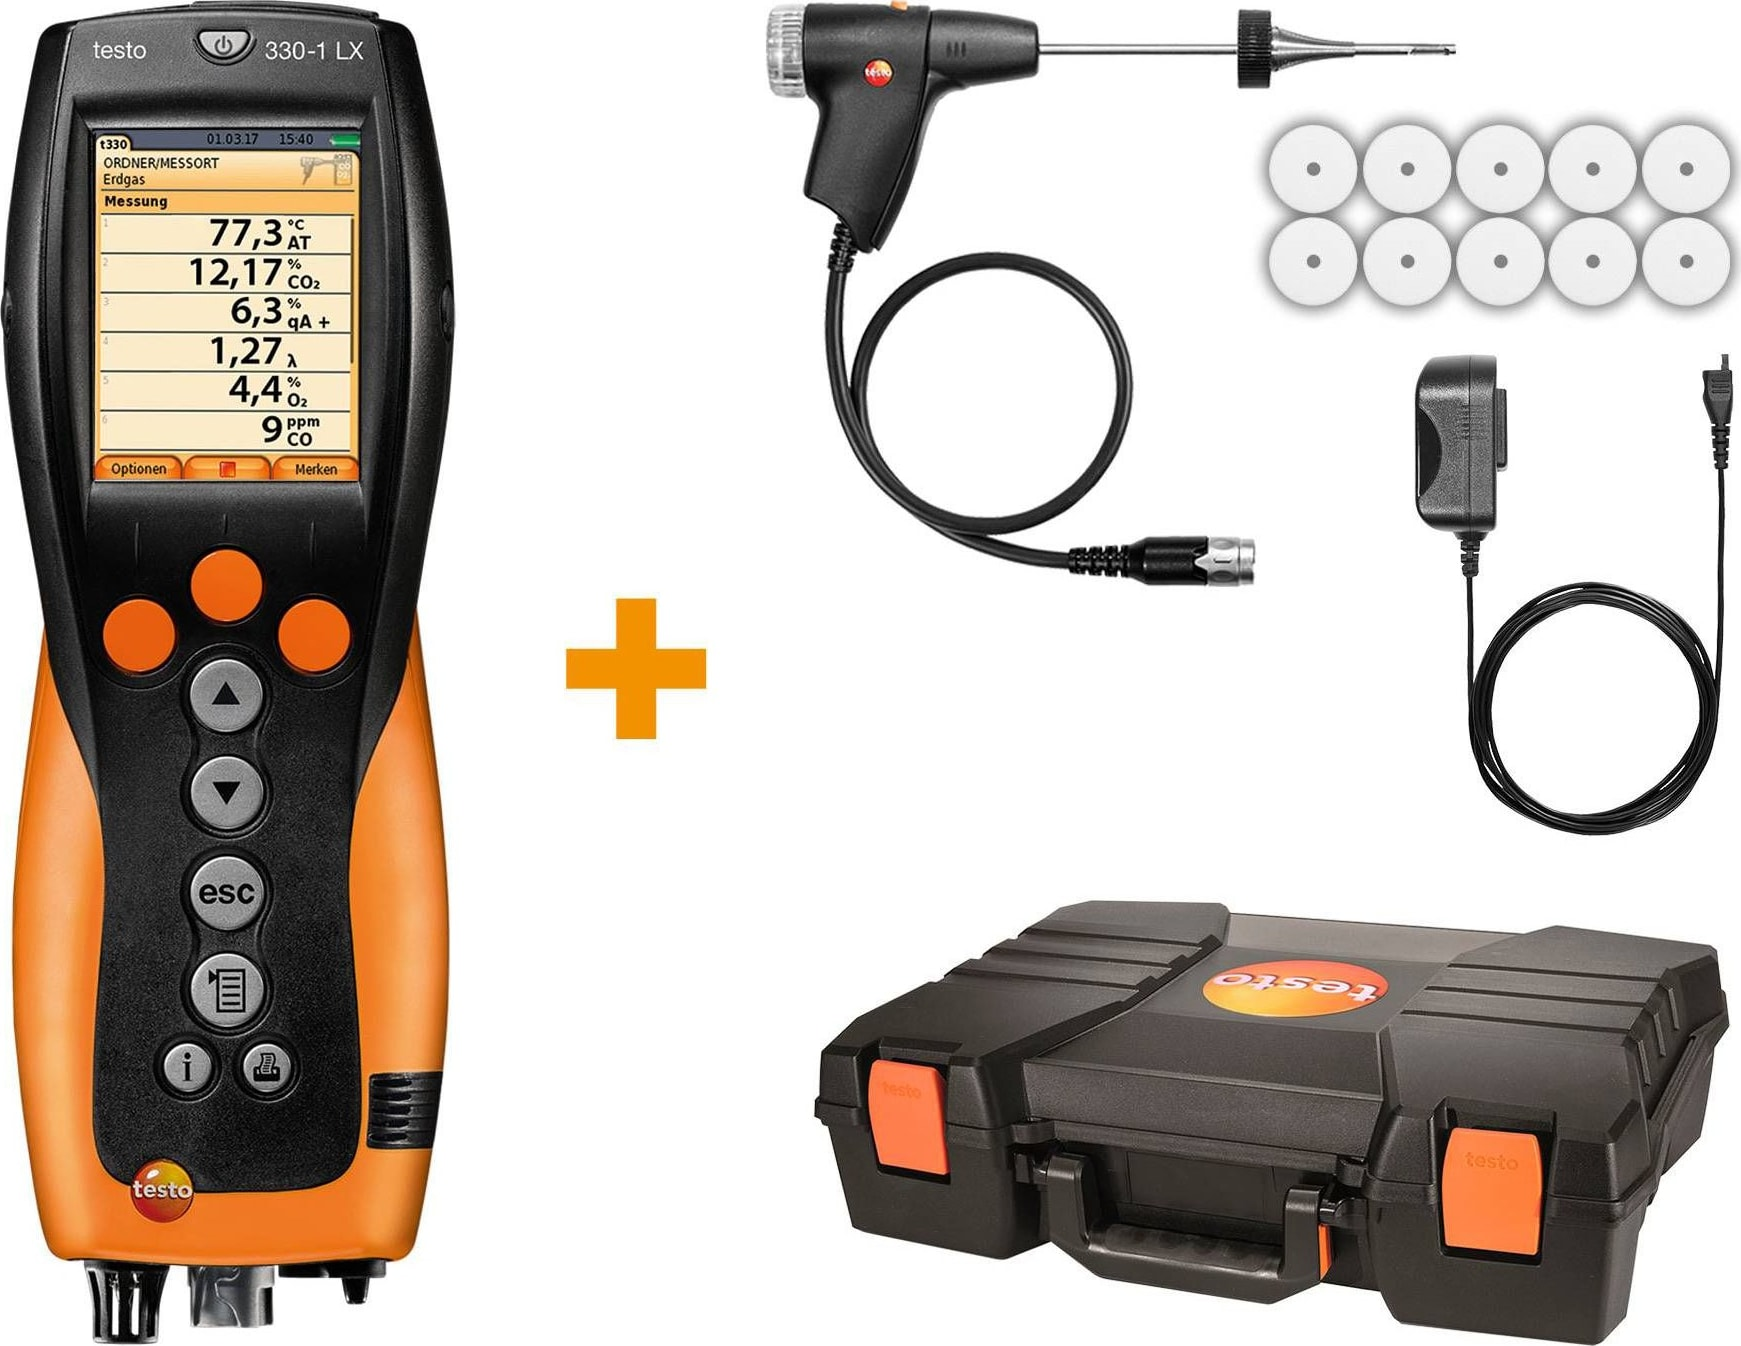 Testo 330-1 LX KIT 1 - Commercial / Light Industrial Combustion Analyzer Kit